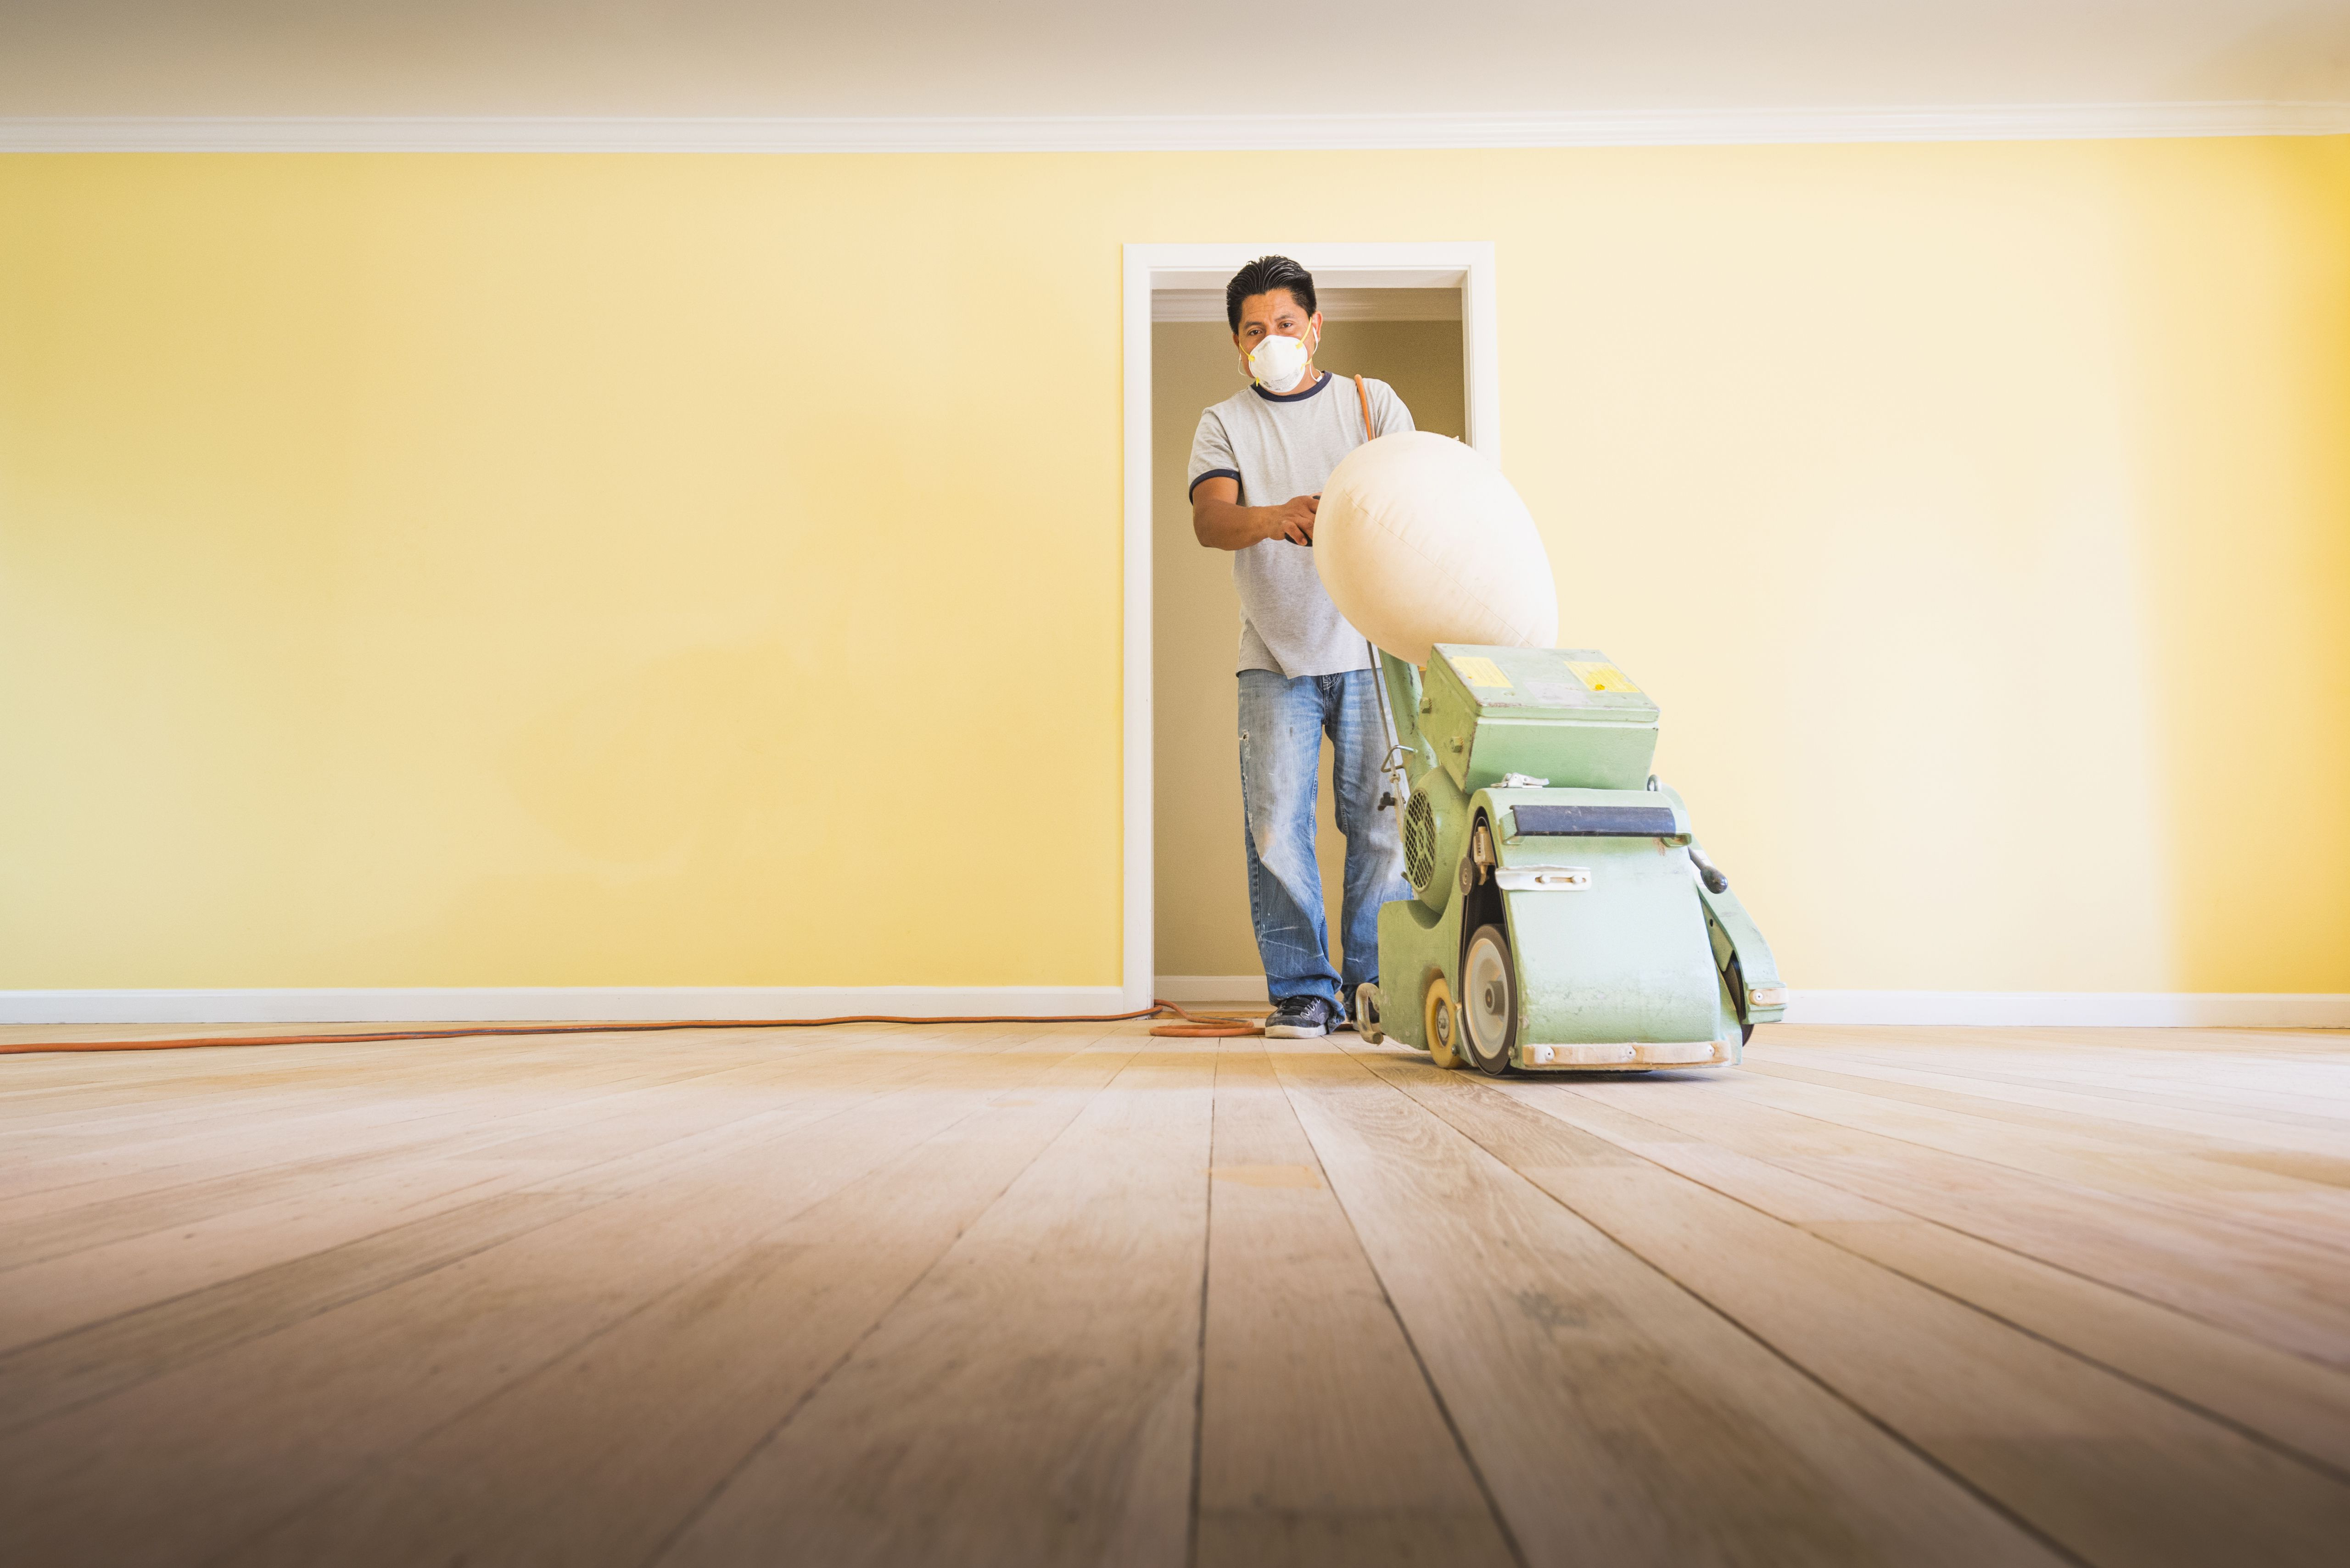 cost to sand and stain hardwood floors of should you paint walls or refinish floors first regarding floorsandingafterpainting 5a8f08dfae9ab80037d9d878